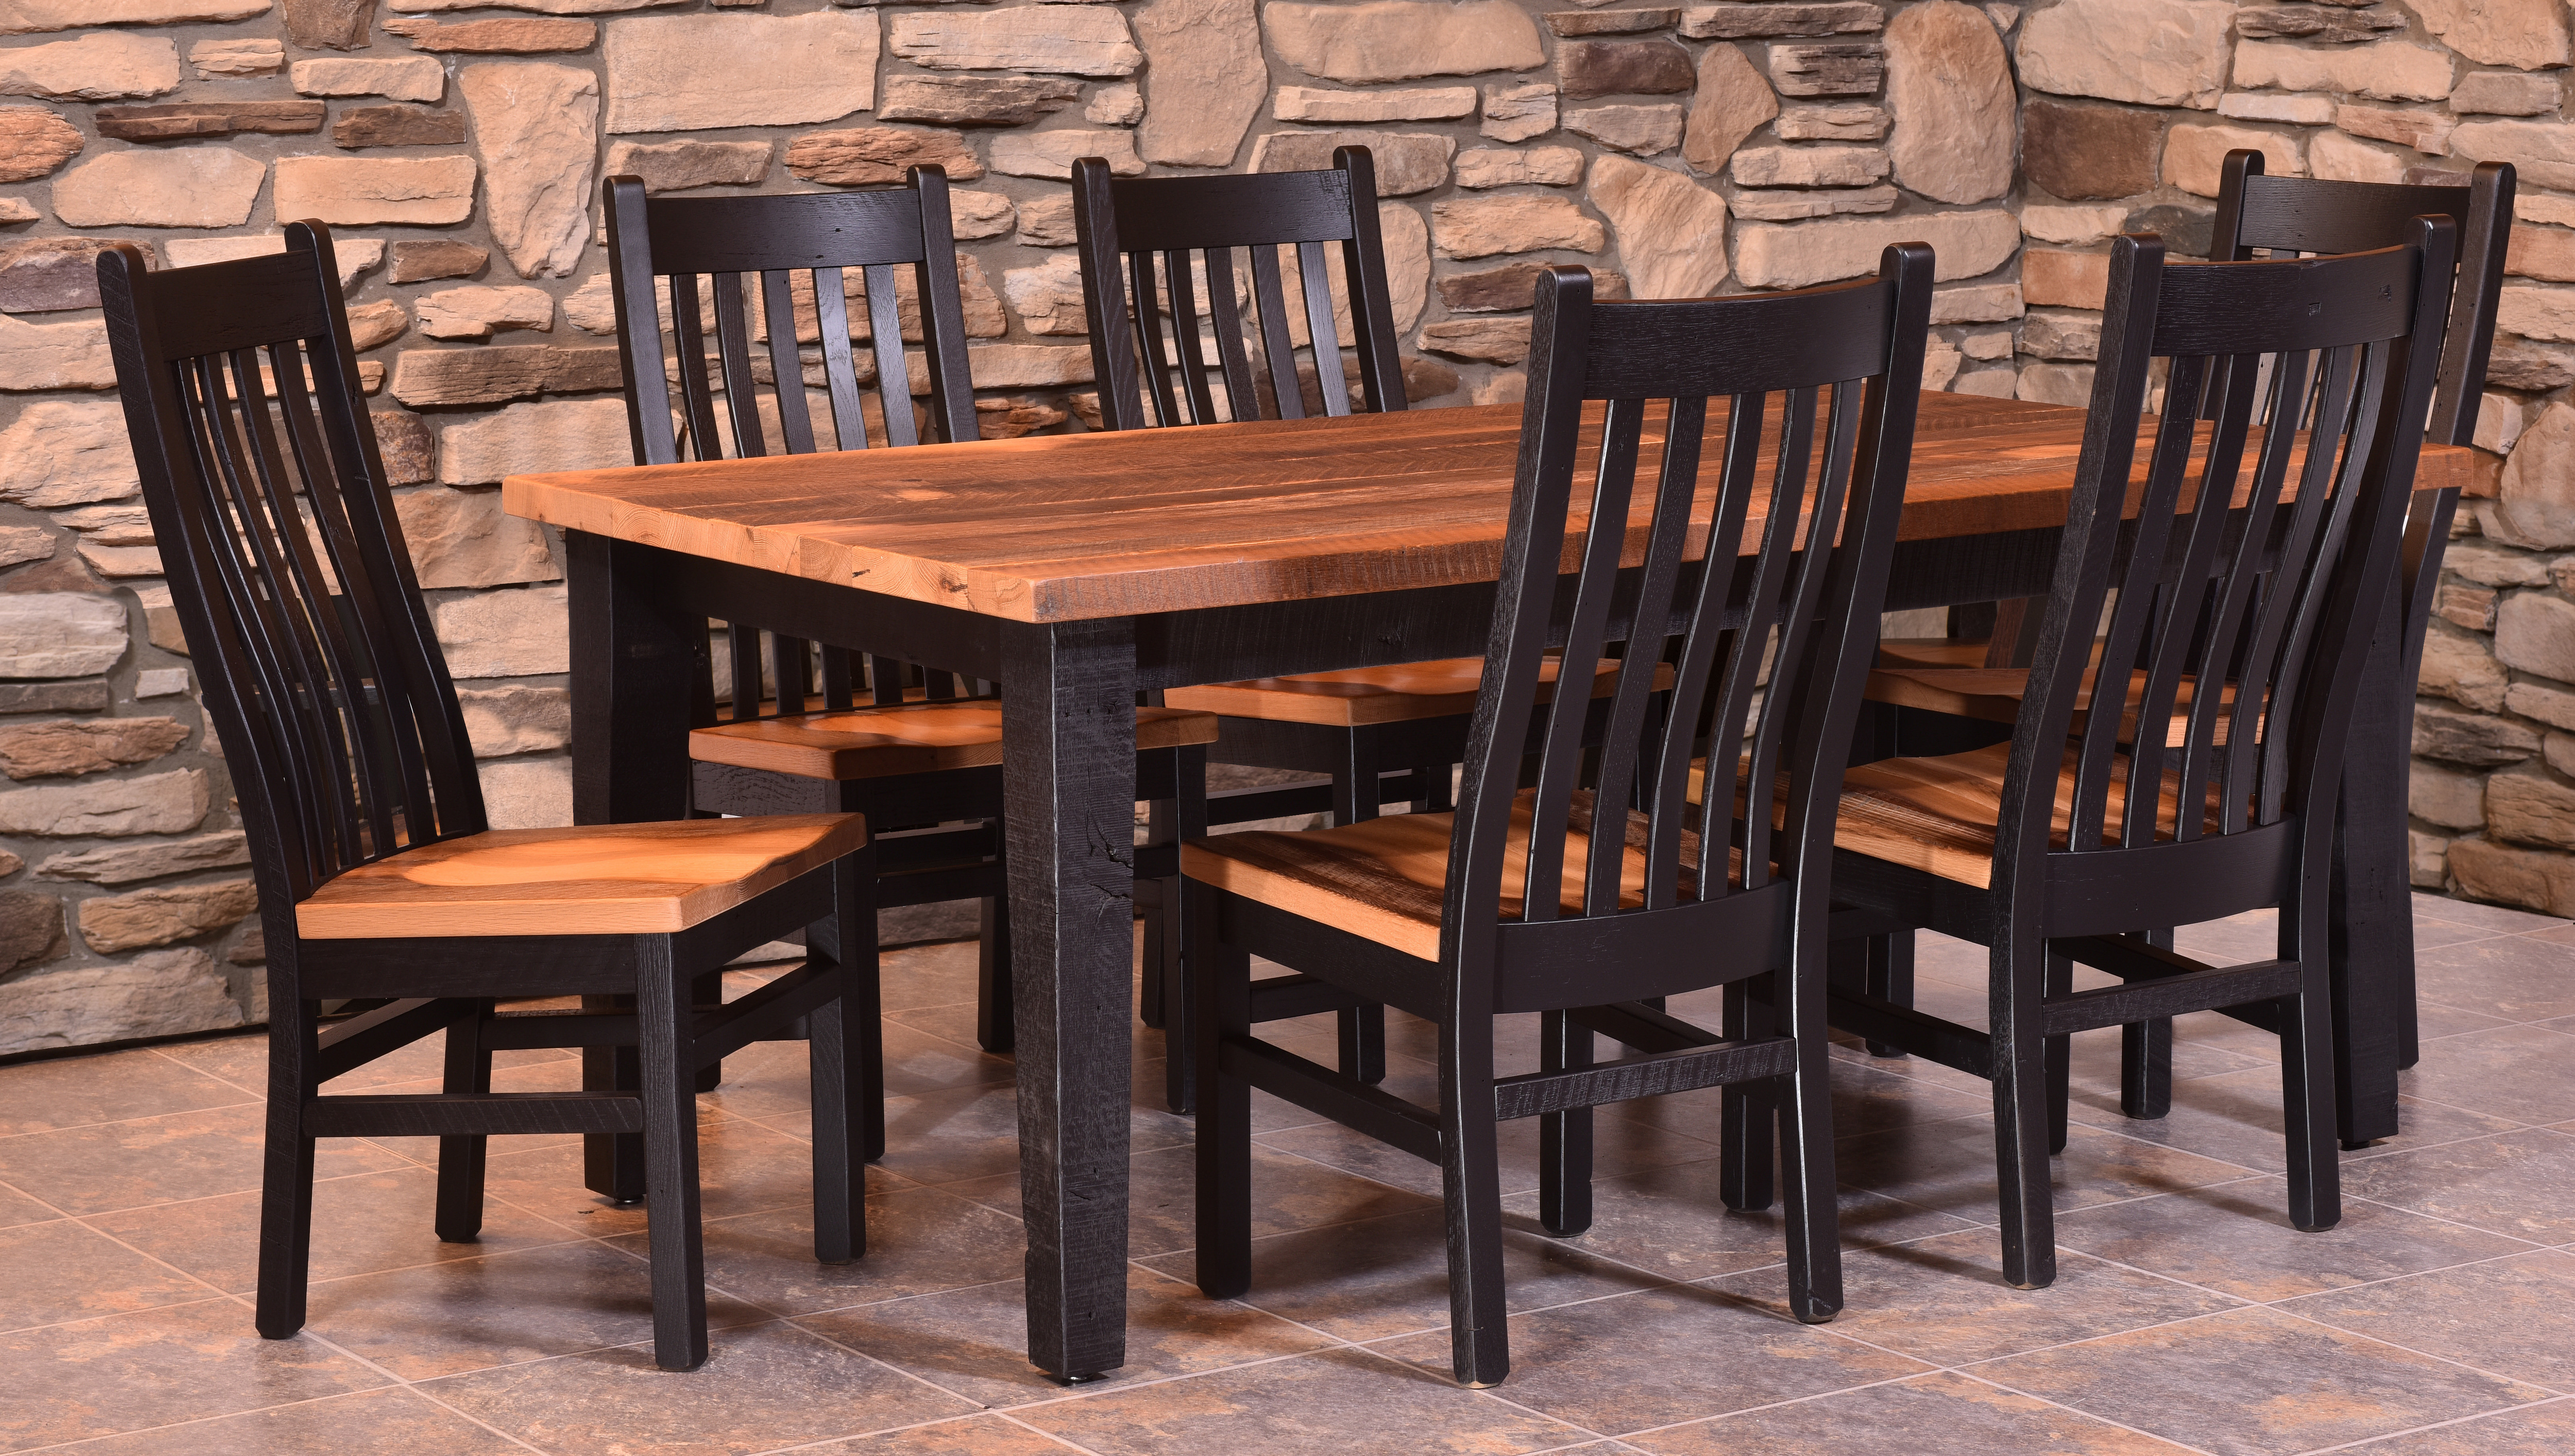 Almanzo Black Tapered Leg Table and Mission Chairs by Urban Barnwood 113-4272; 6 - 231-mac